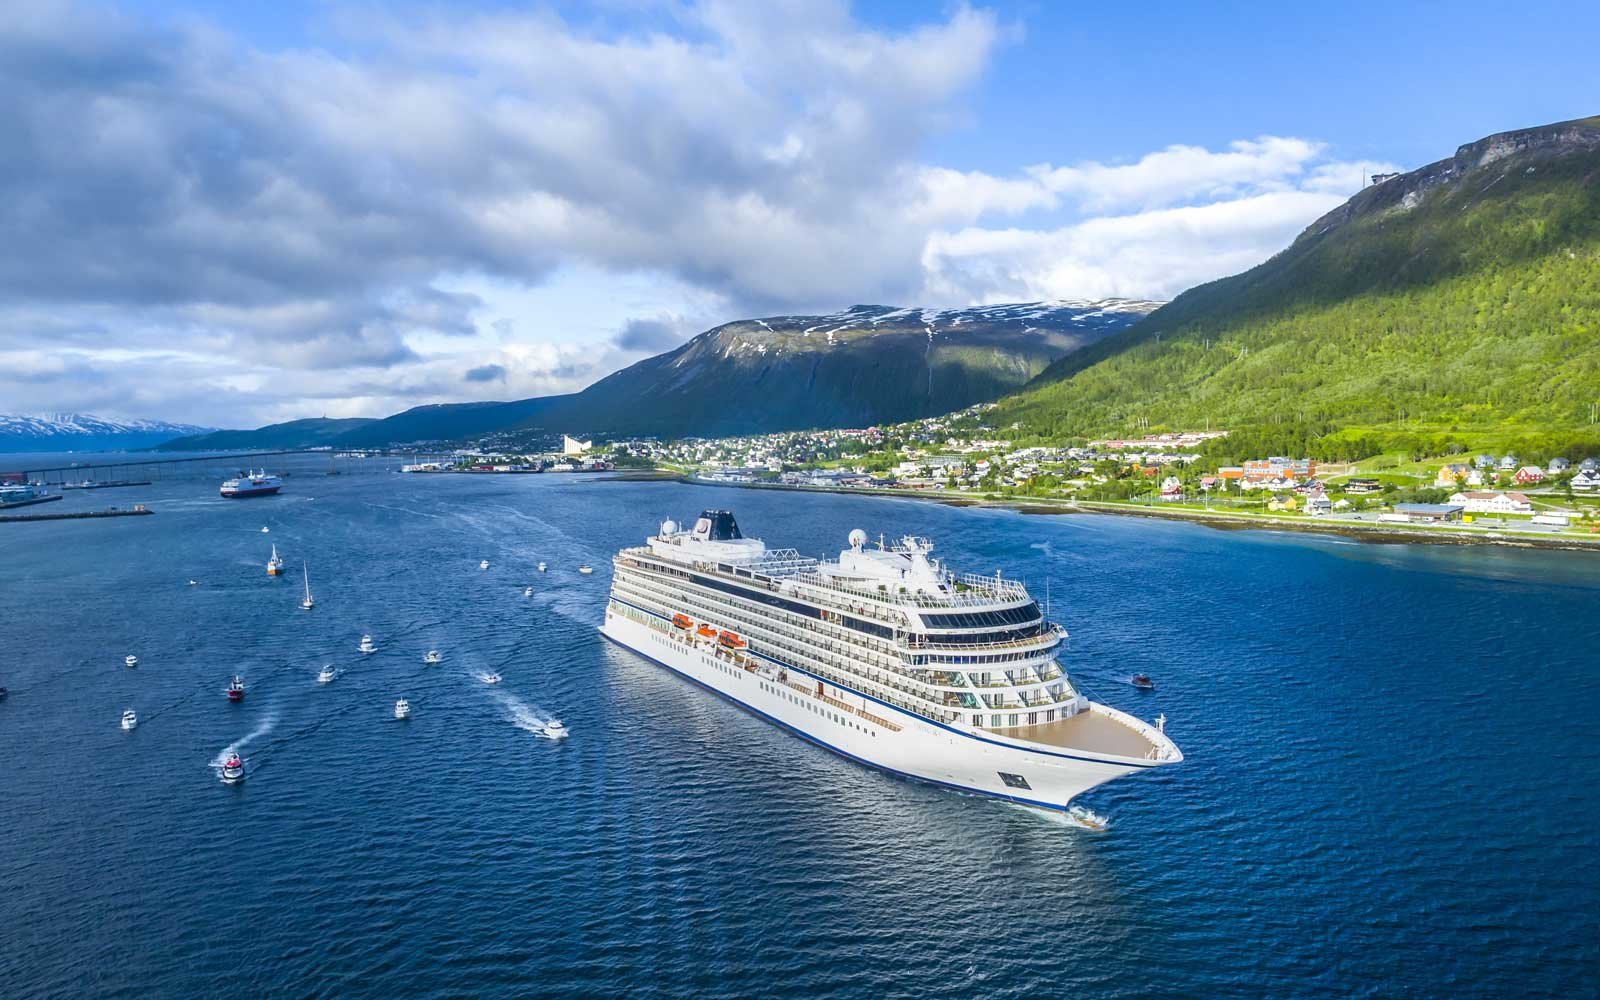 Viking Sky cruise ship in Tromso Norway on its Northern Lights itinerary